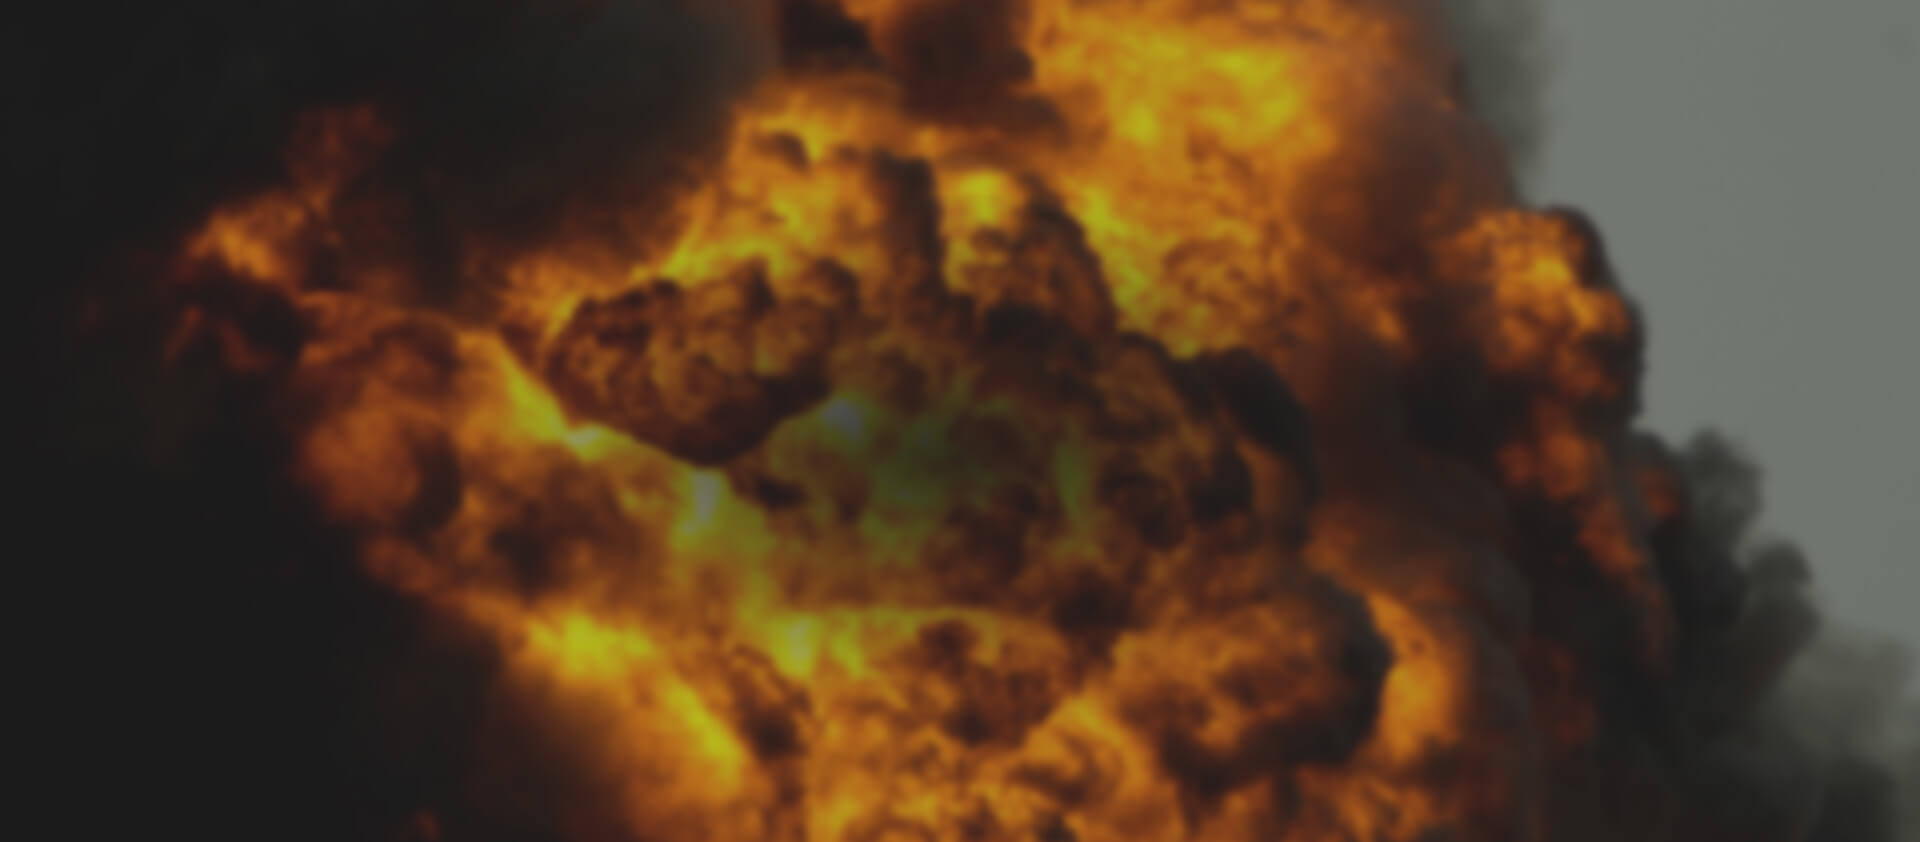 Lincoln County, Kentucky Pipeline Explosion: Woman Tried to Report